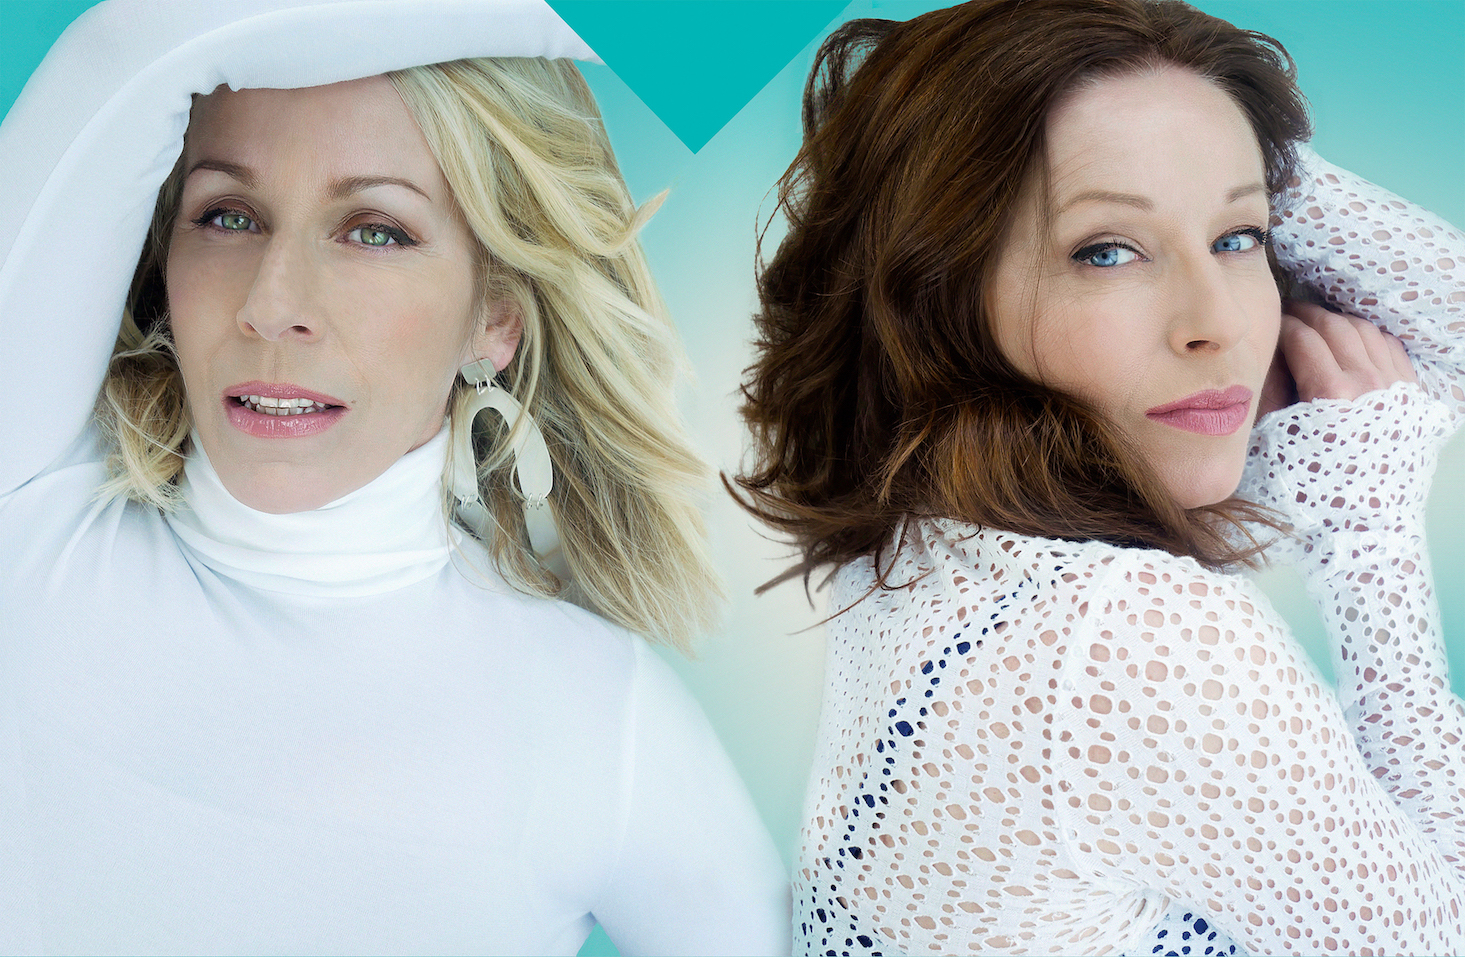 EVENT: Bananarama to perform at Live in Somerset on Saturday July 13